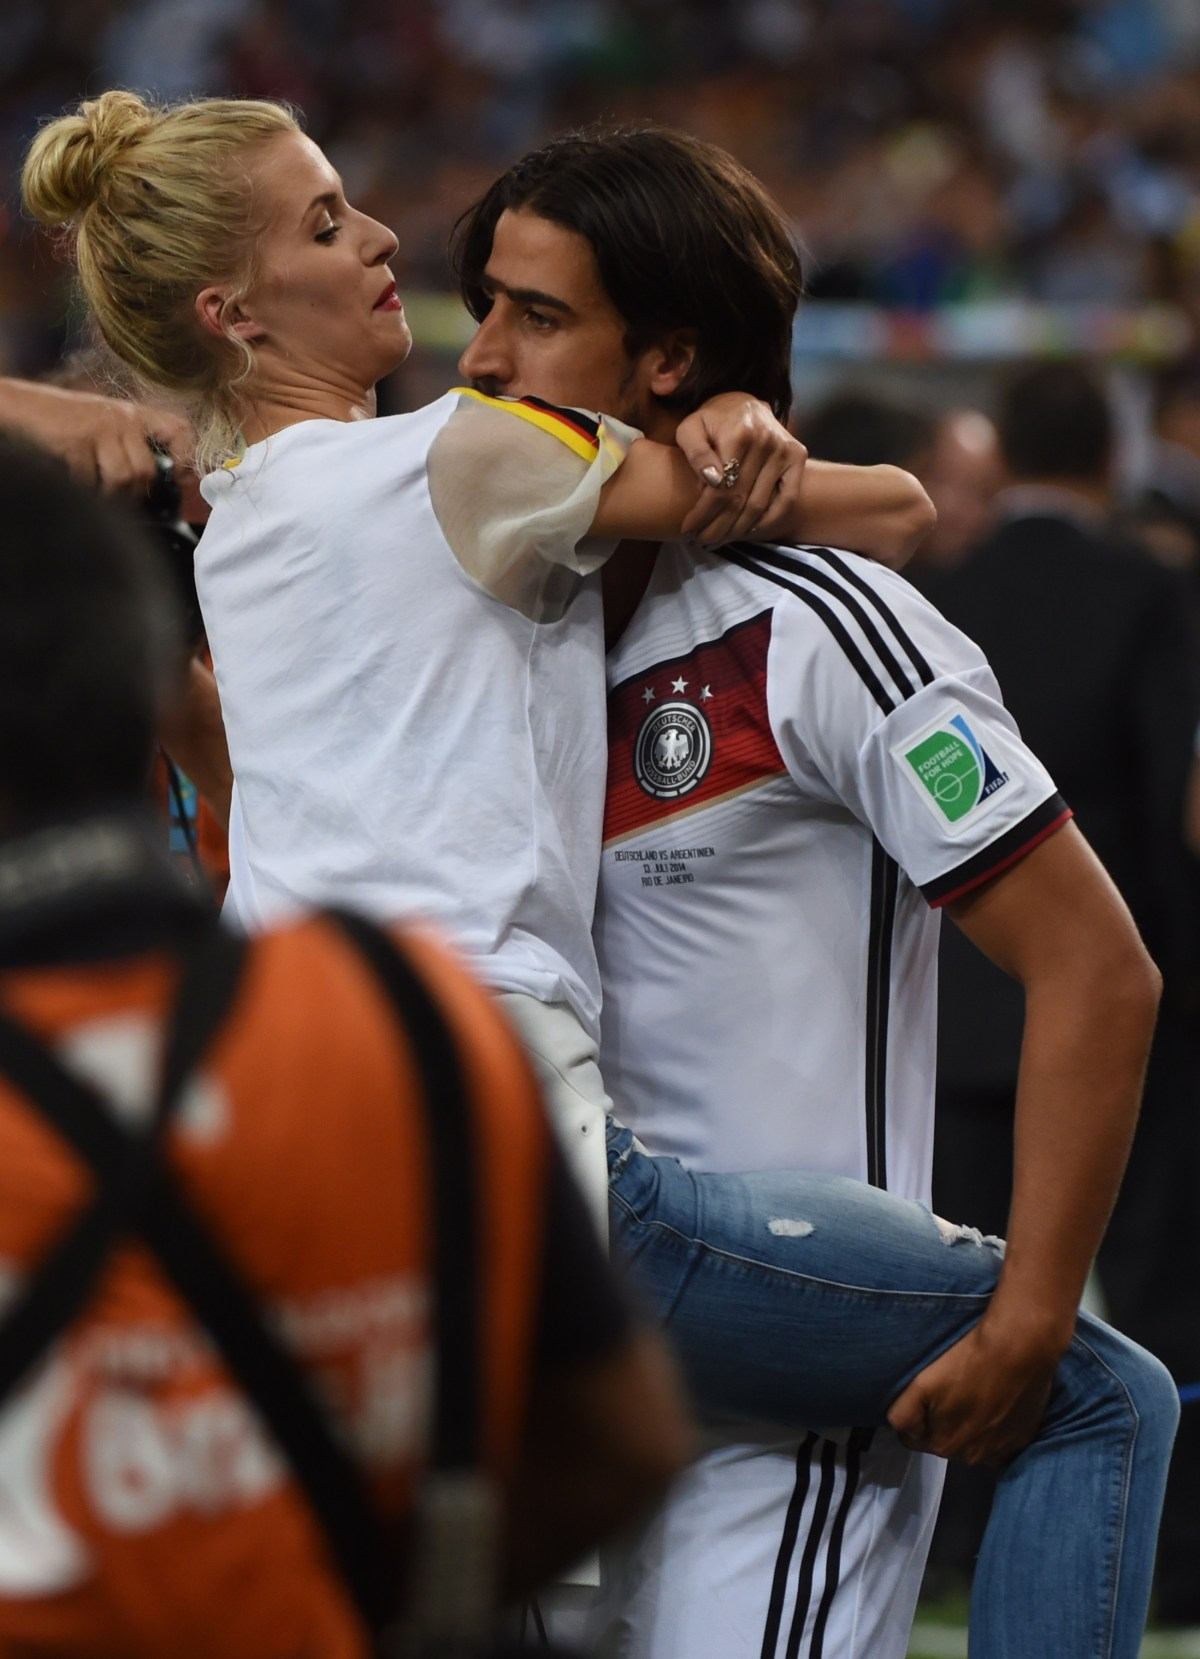 Sami Khedira with his wife Lena Gercke (credit: AFP / Patrik Stollarz)